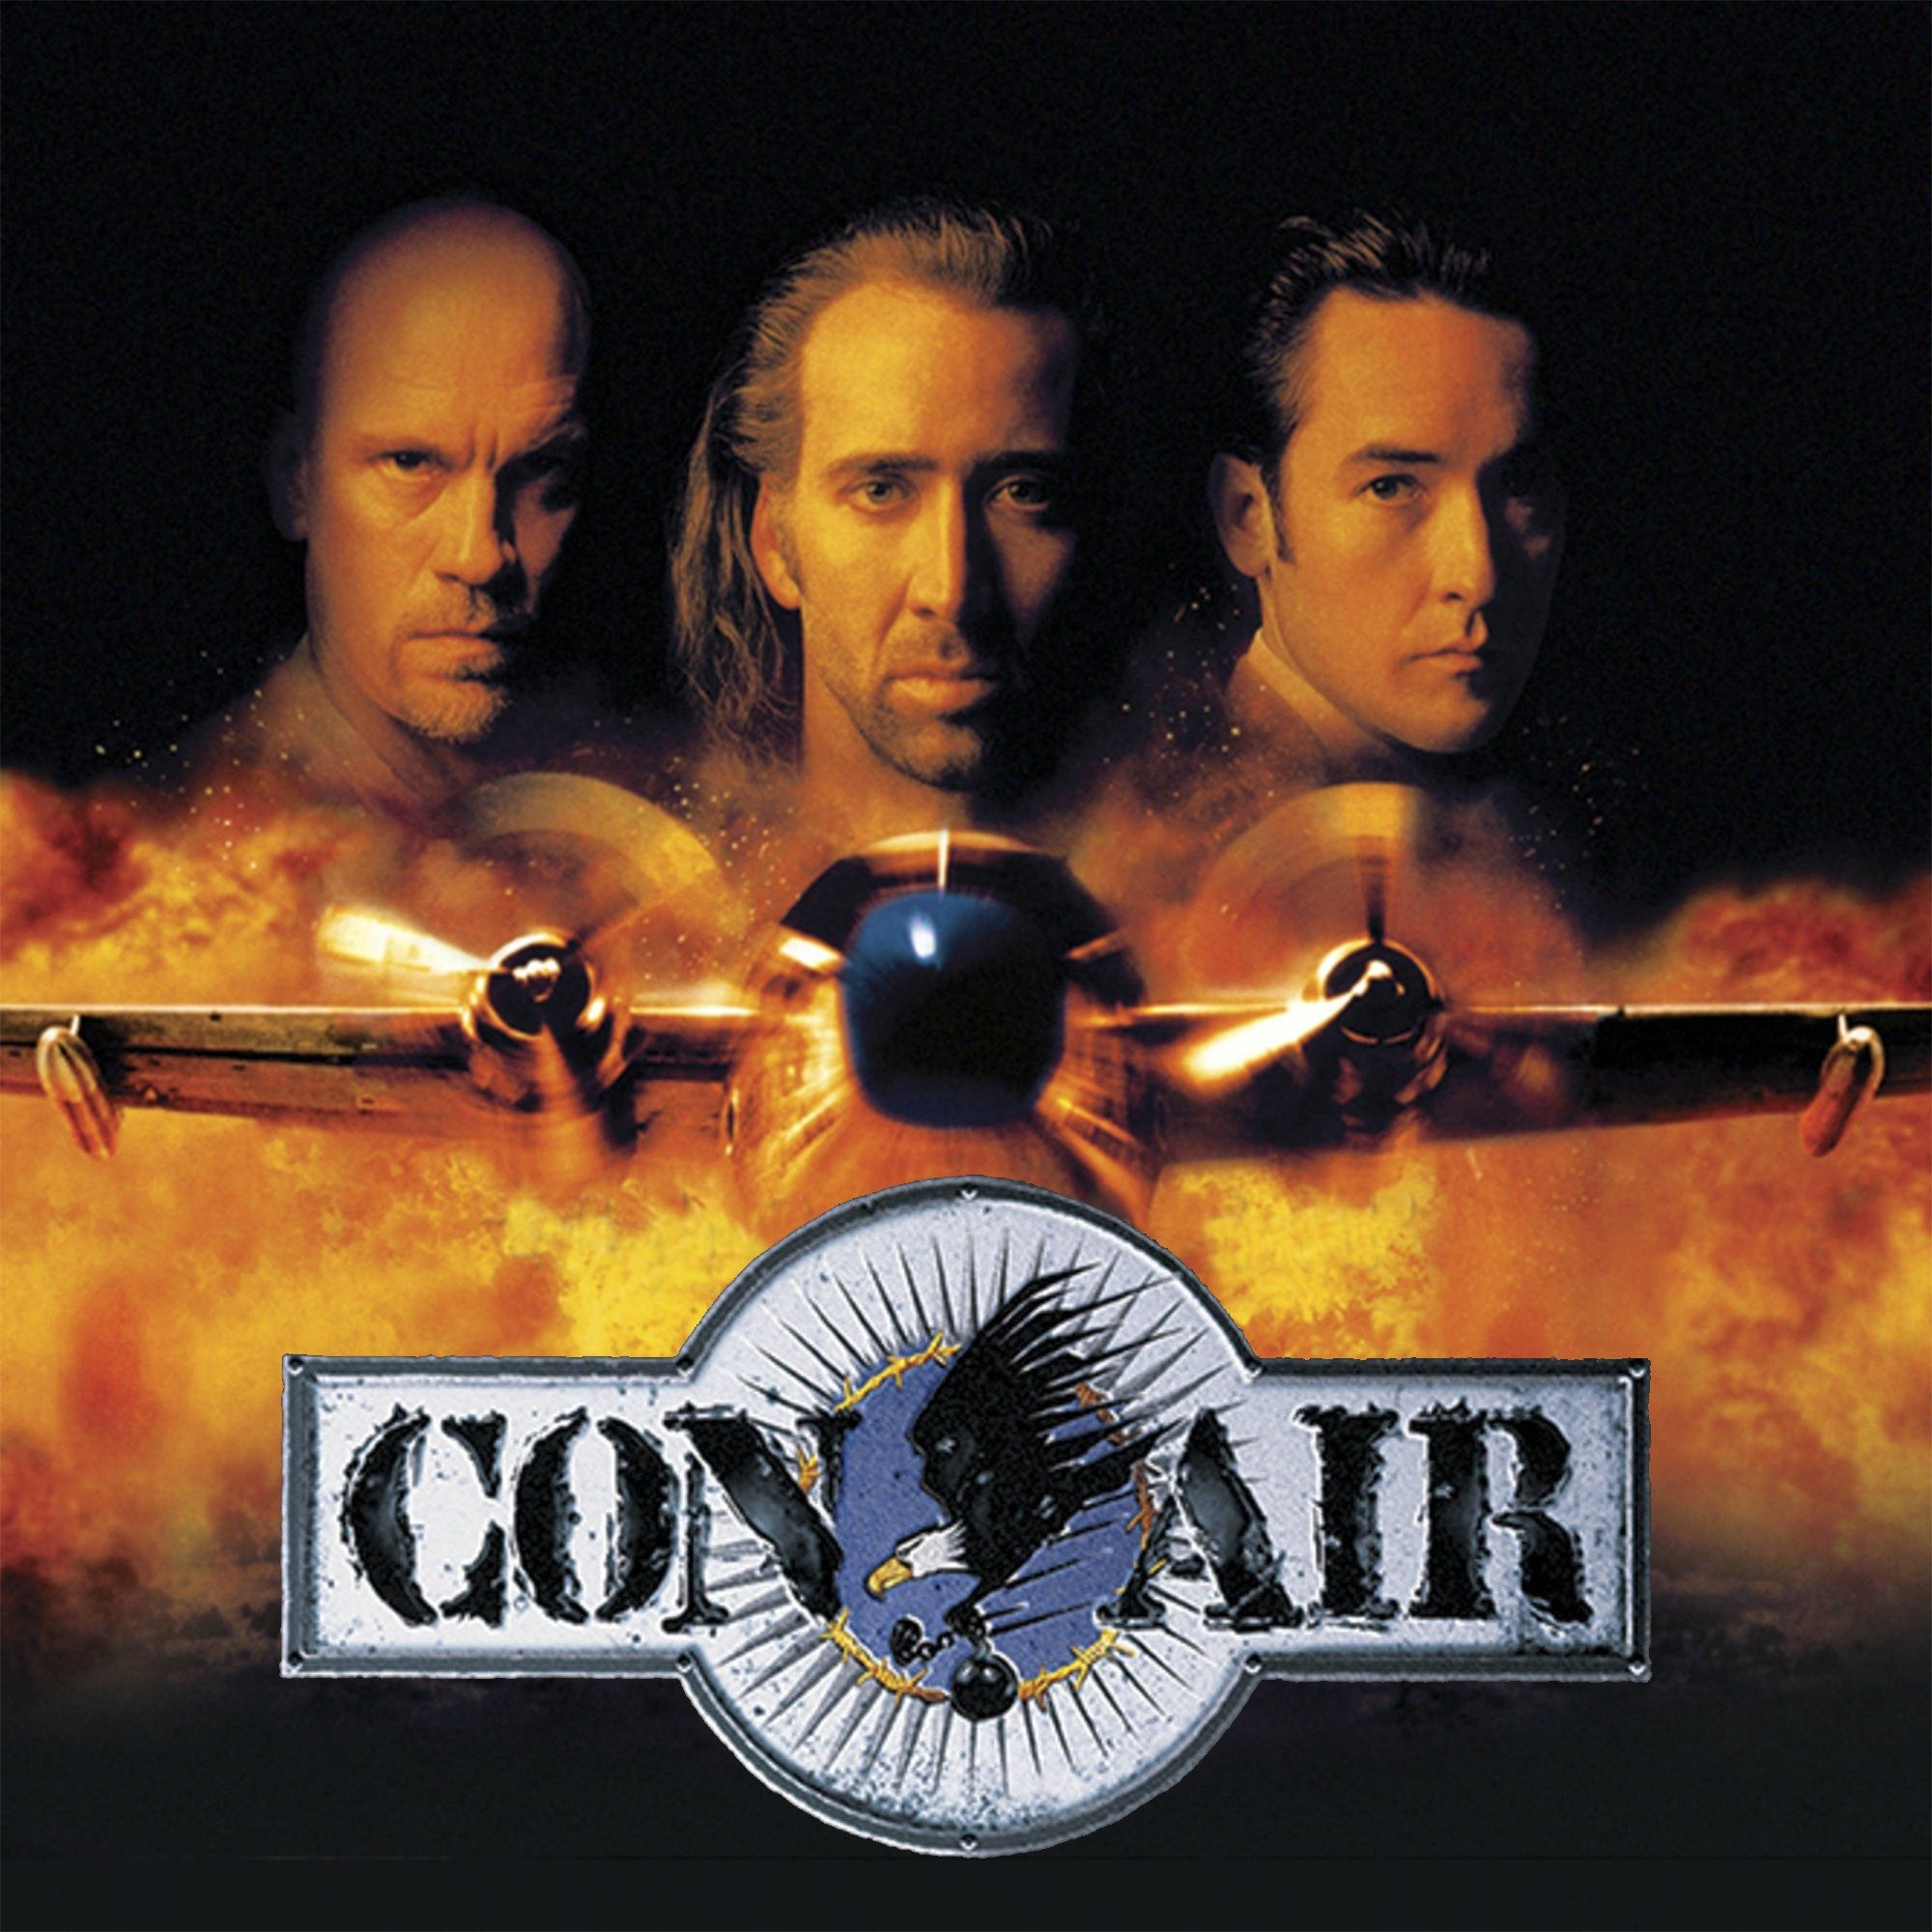 Watch Con Air Free Streaming Online Plex Full movie online free when the government puts all its rotten criminal eggs in one airborne basket, it's asking for trouble. mediaverse by plex tv plex